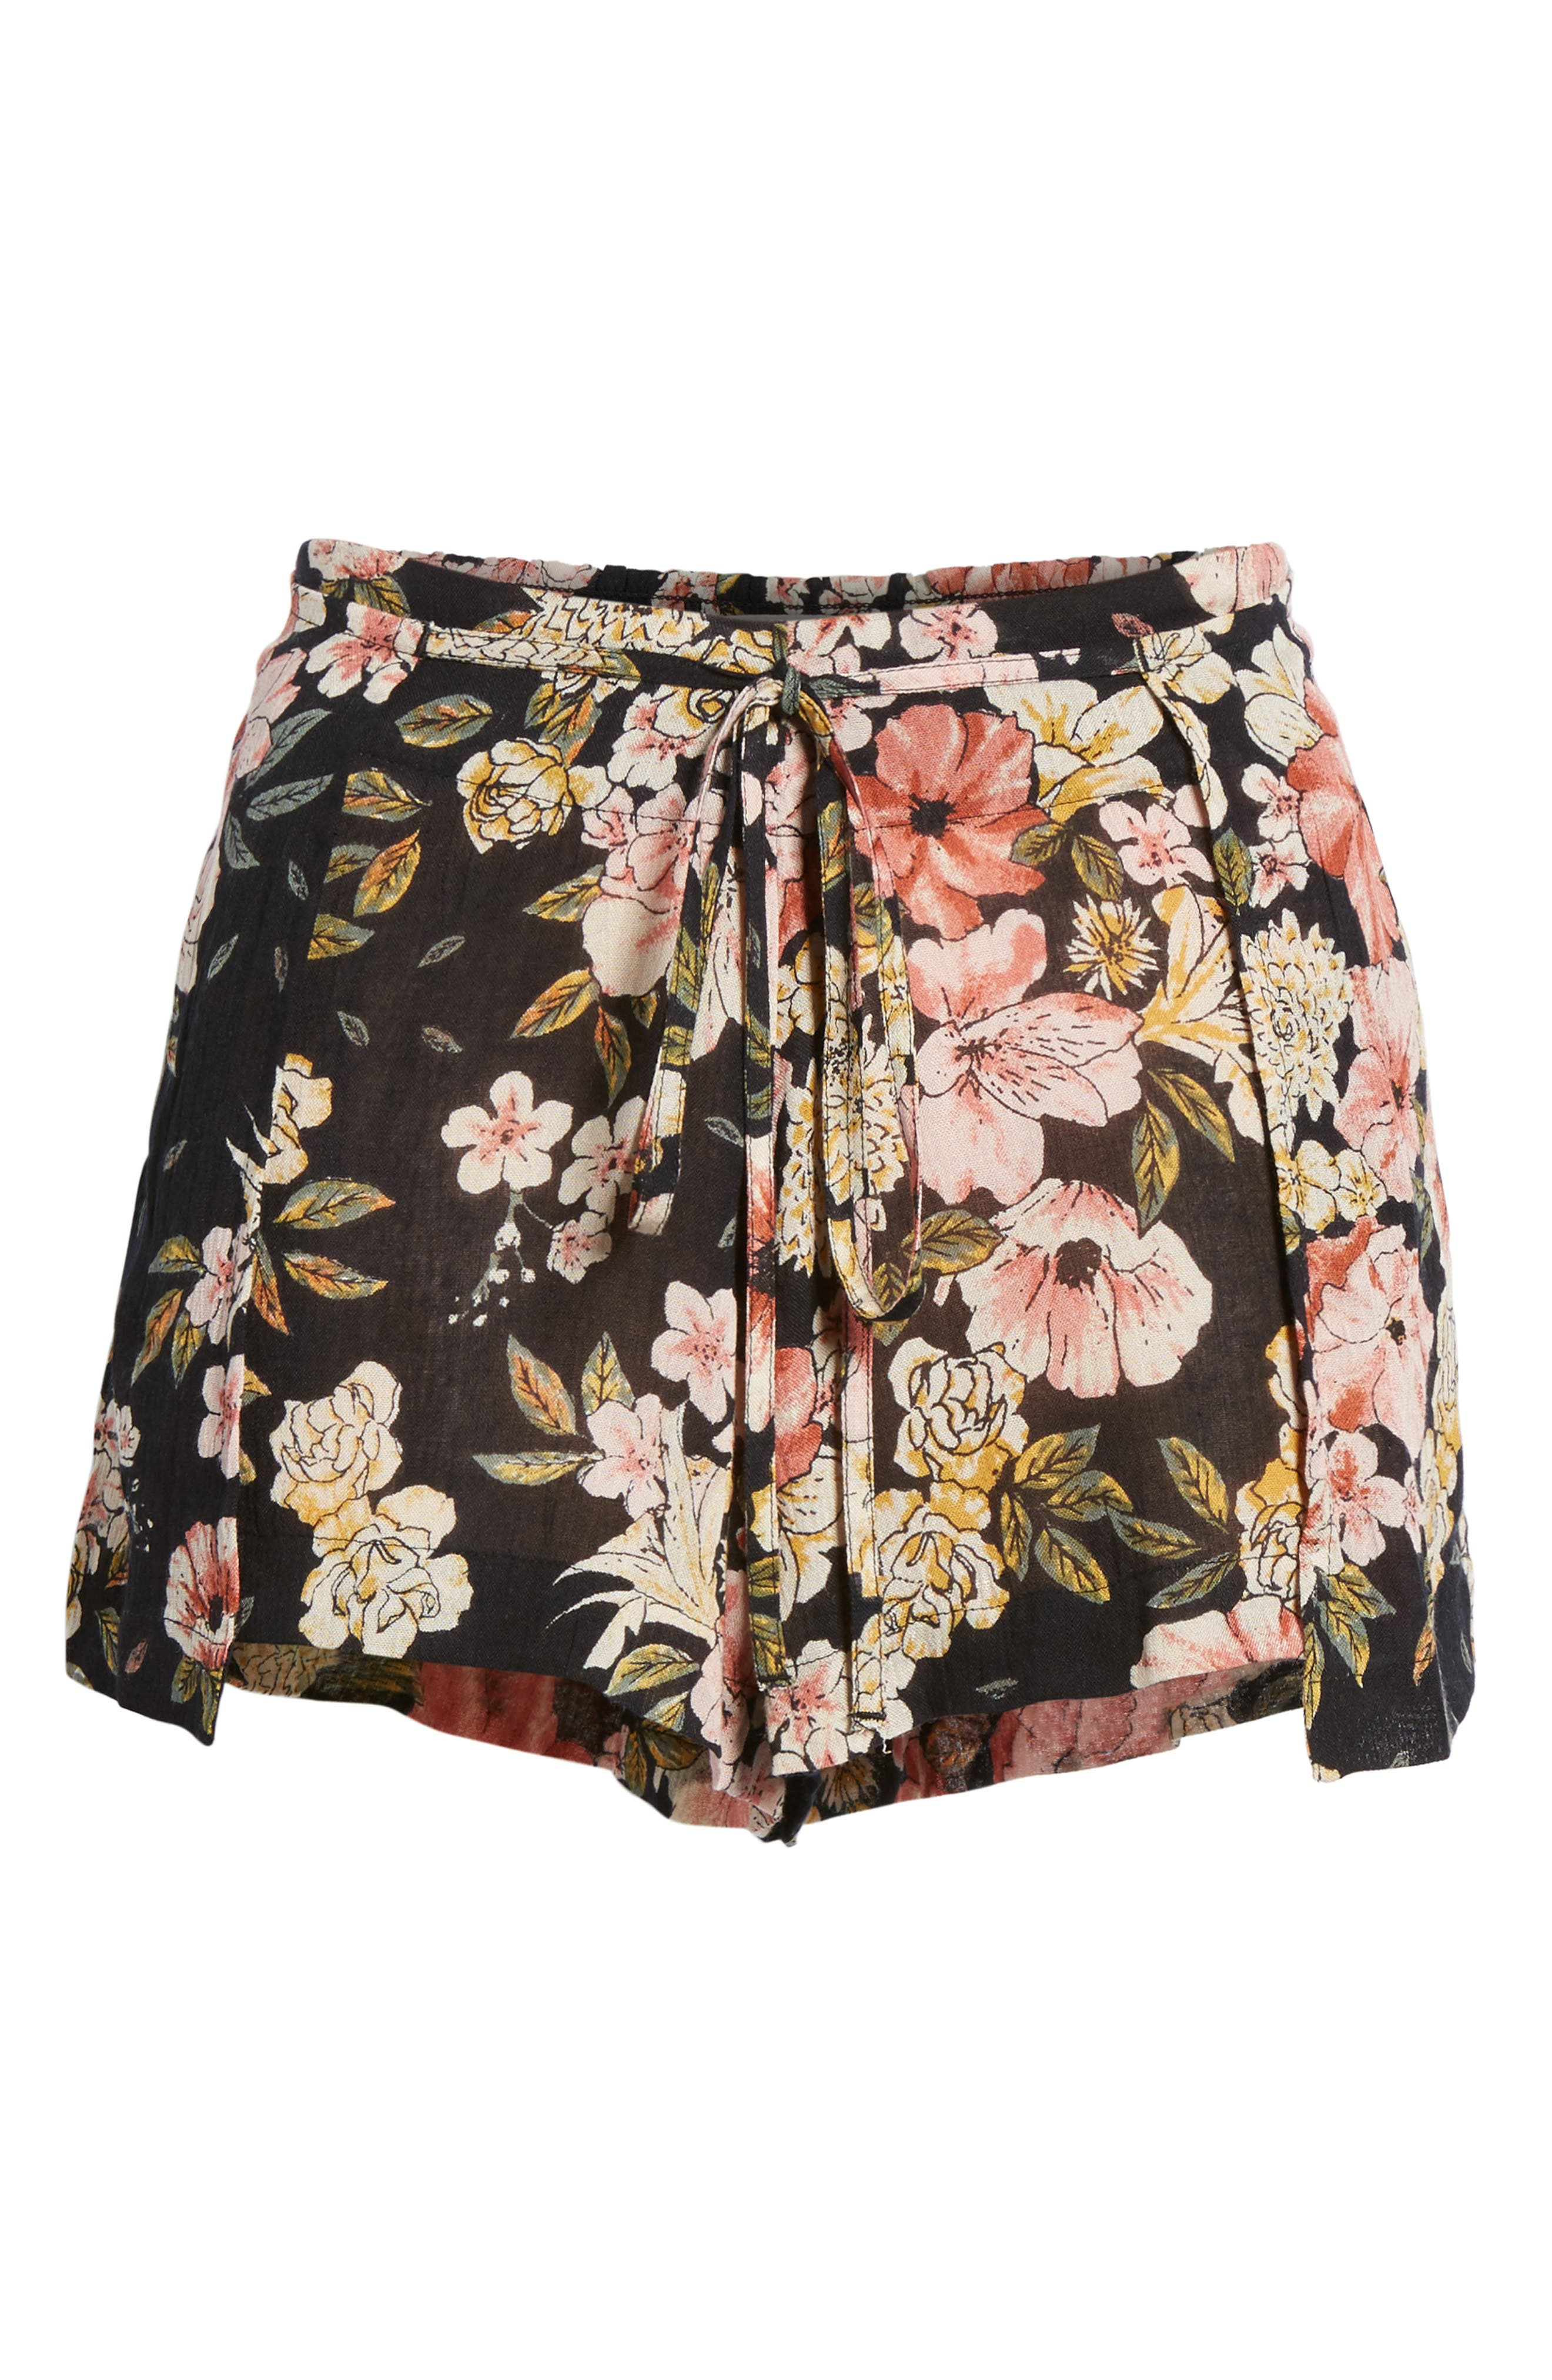 Trippy Day Floral Print Shorts,                             Alternate thumbnail 7, color,                             Black